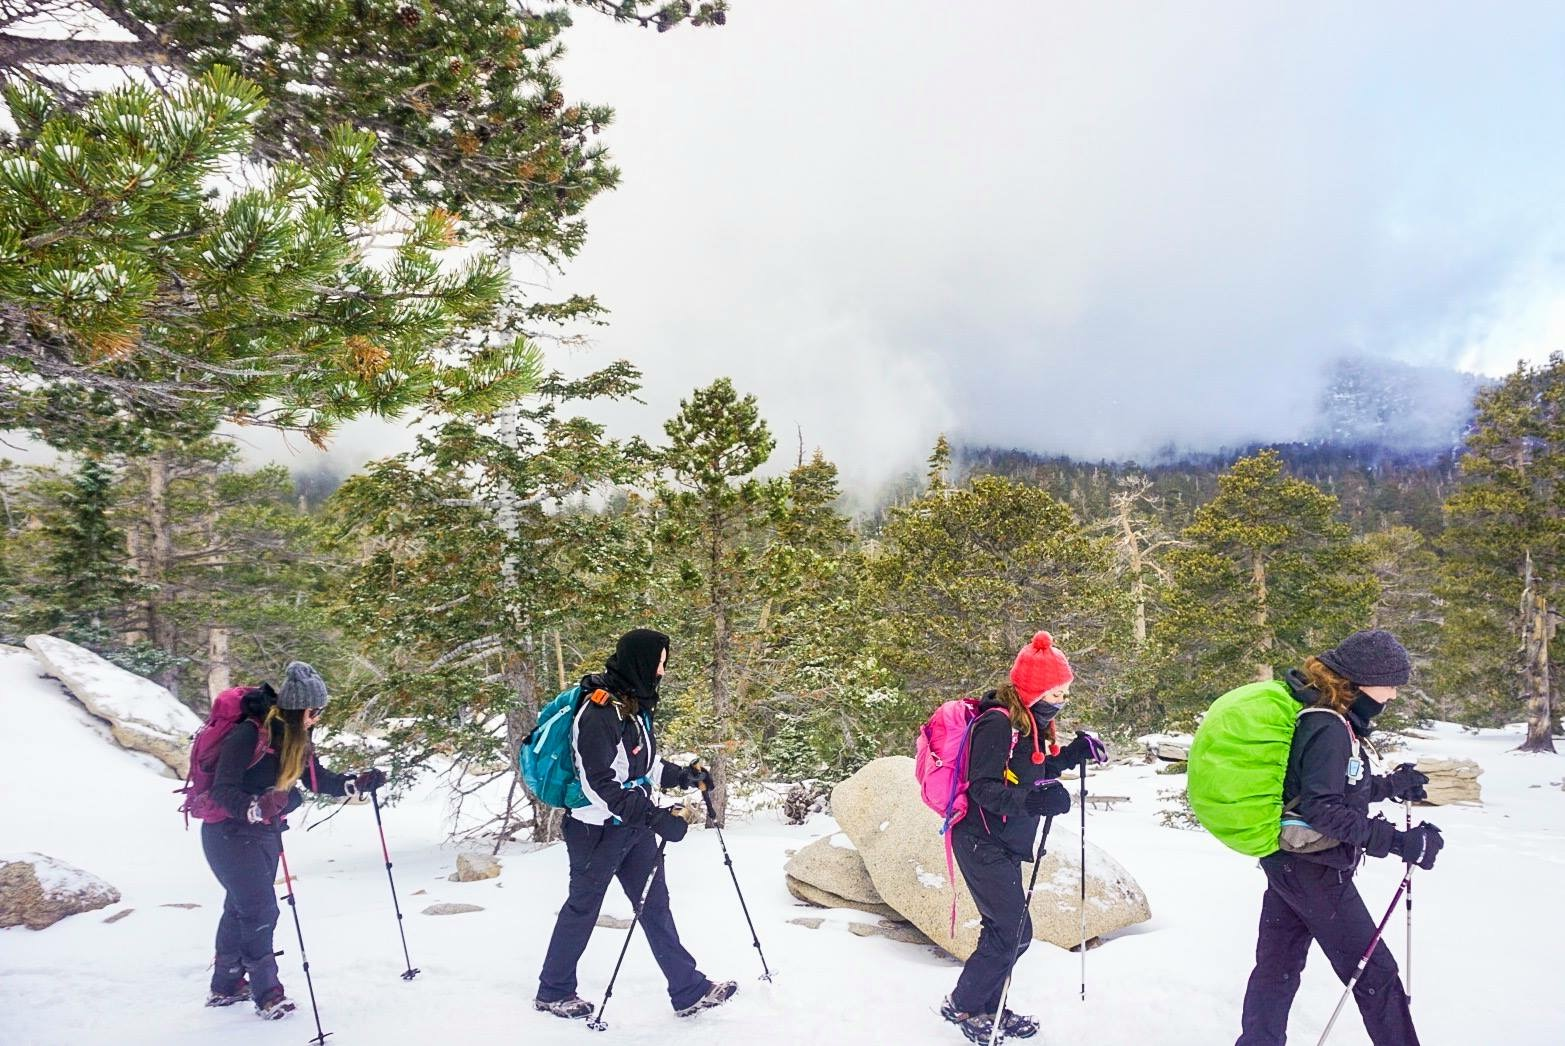 January 2018: GirlsWhoHike Snow Hike in San Jacinto Wilderness to Wellman's Divide